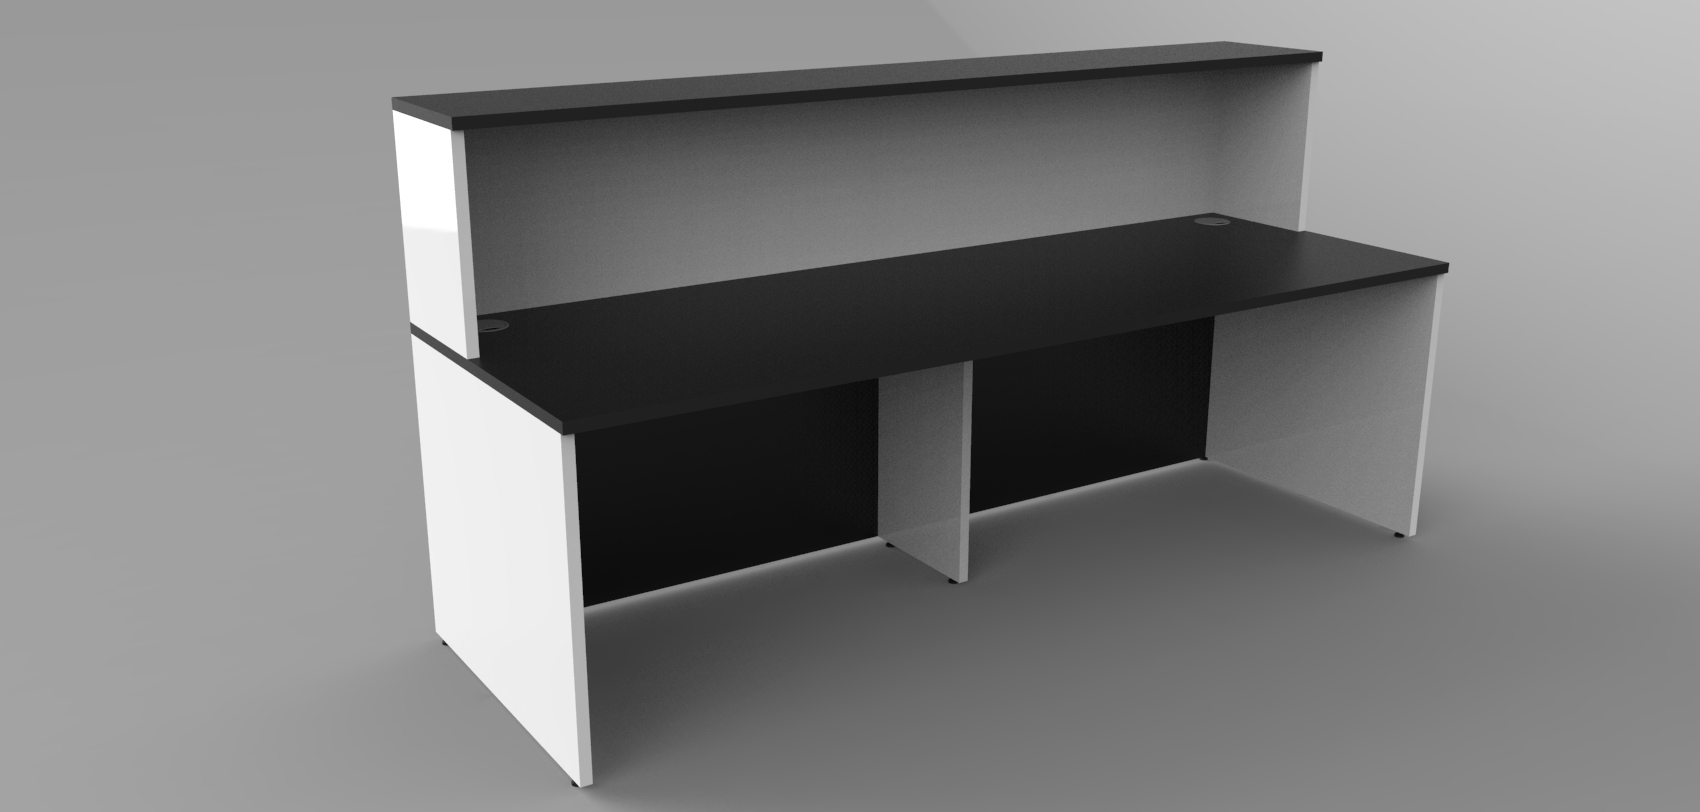 Image -23FR Flex bespoke reception desk-recessed plinth- rear